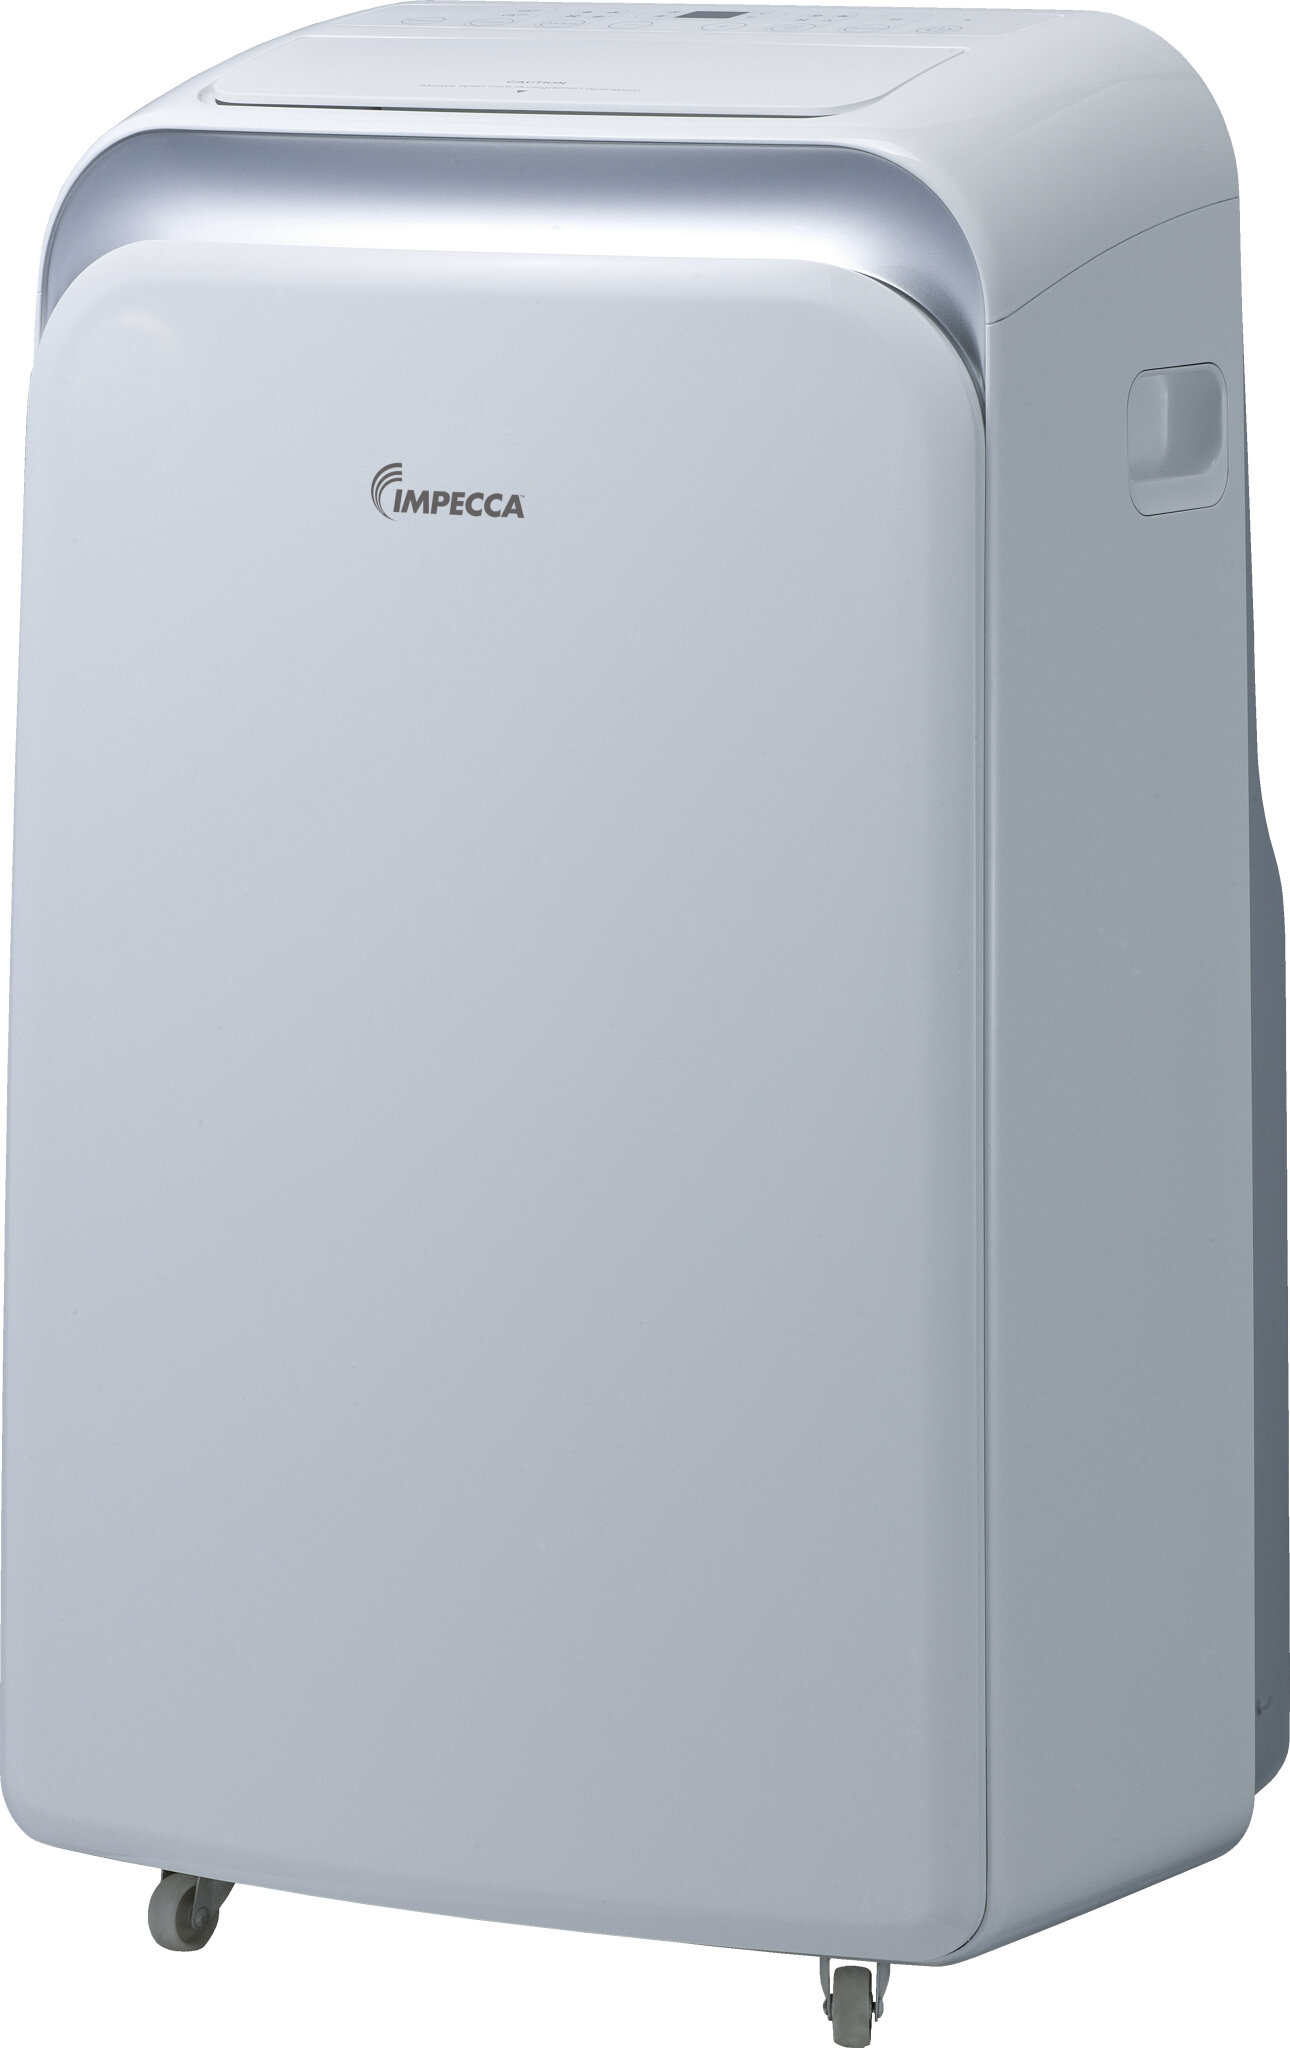 Find the Perfect 10,001-15,000 BTU Air Conditioners   Wayfair